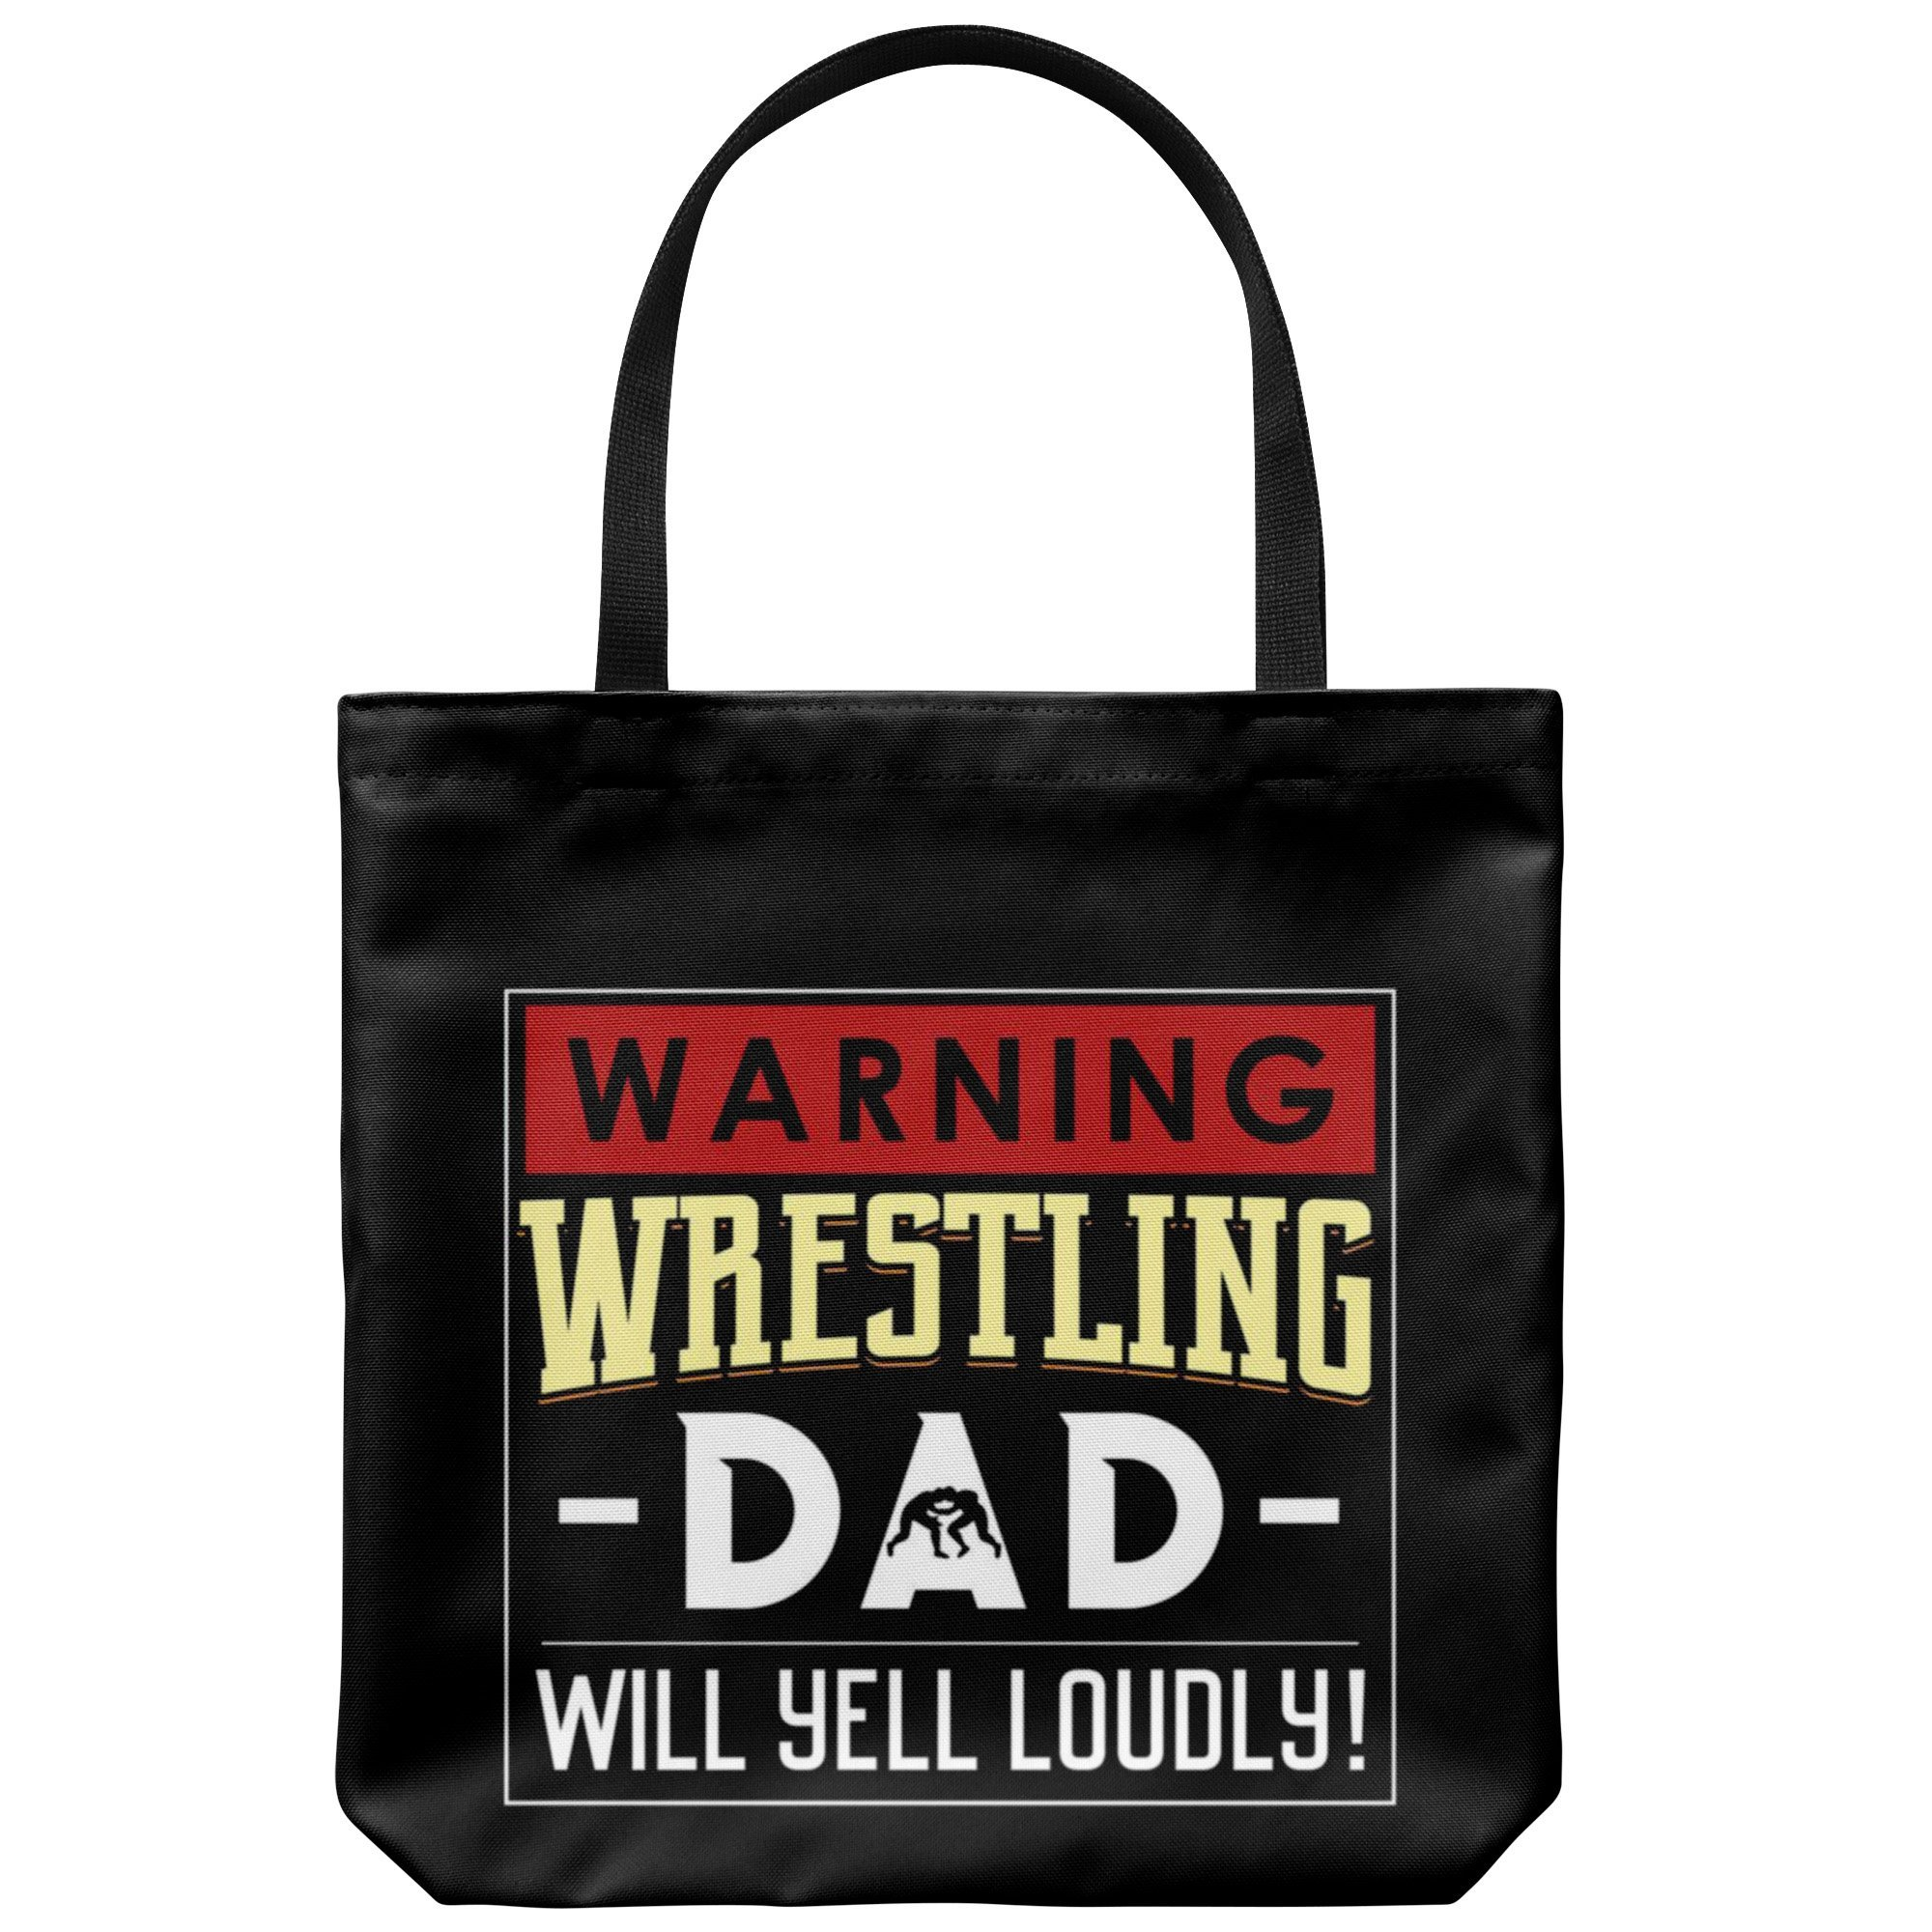 Wrestling Dad Canvas Tote Bag Funny Father's Day Wrestler Warning - Yell